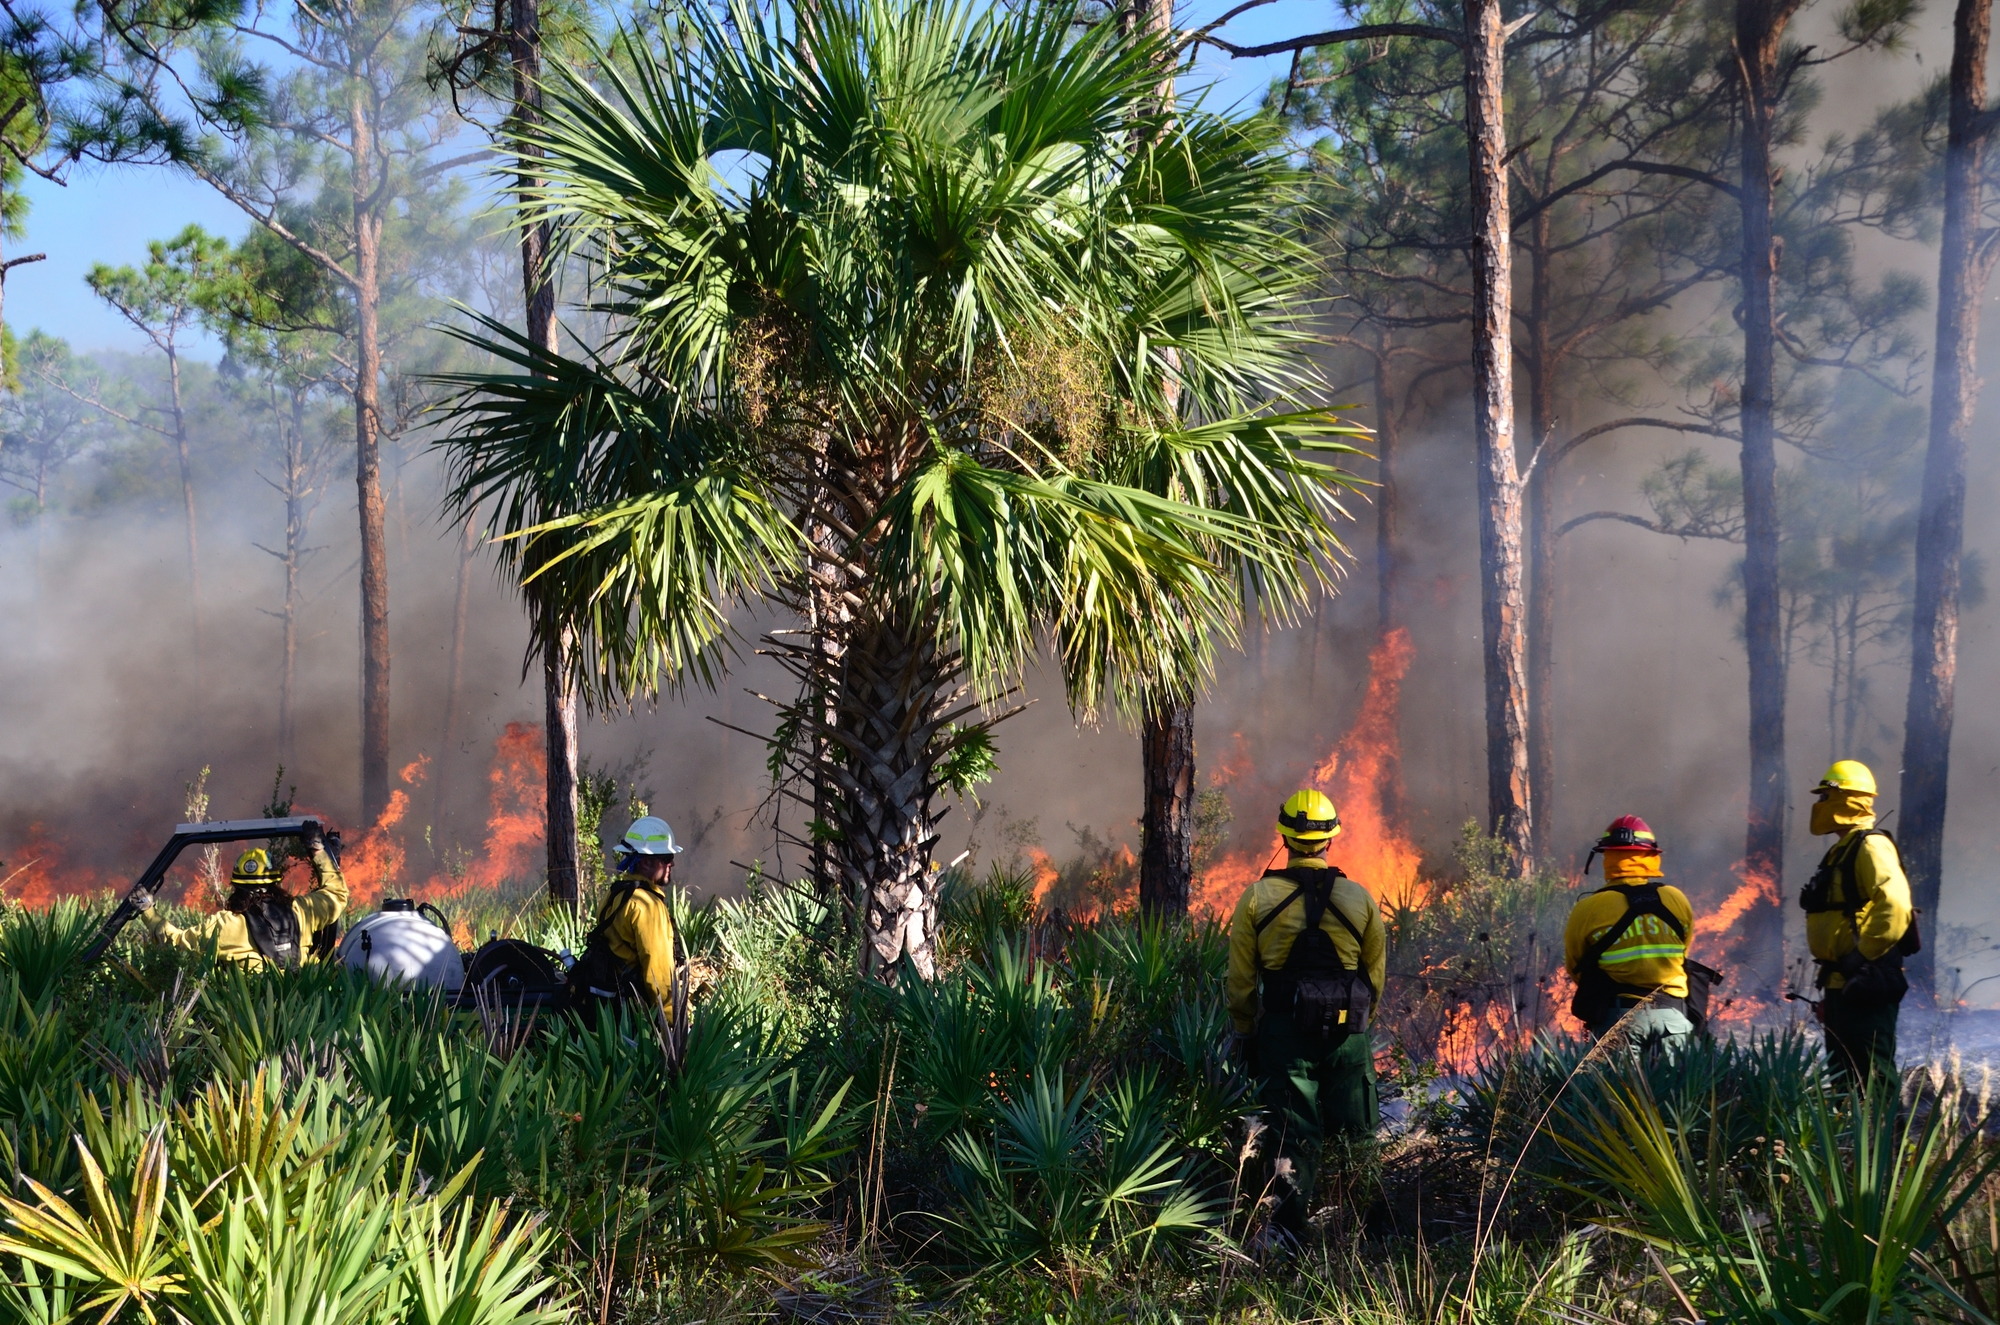 A Florida State Parks Fire Crew monitoring a Prescribed Fire at Jonathan Dickinson State Park